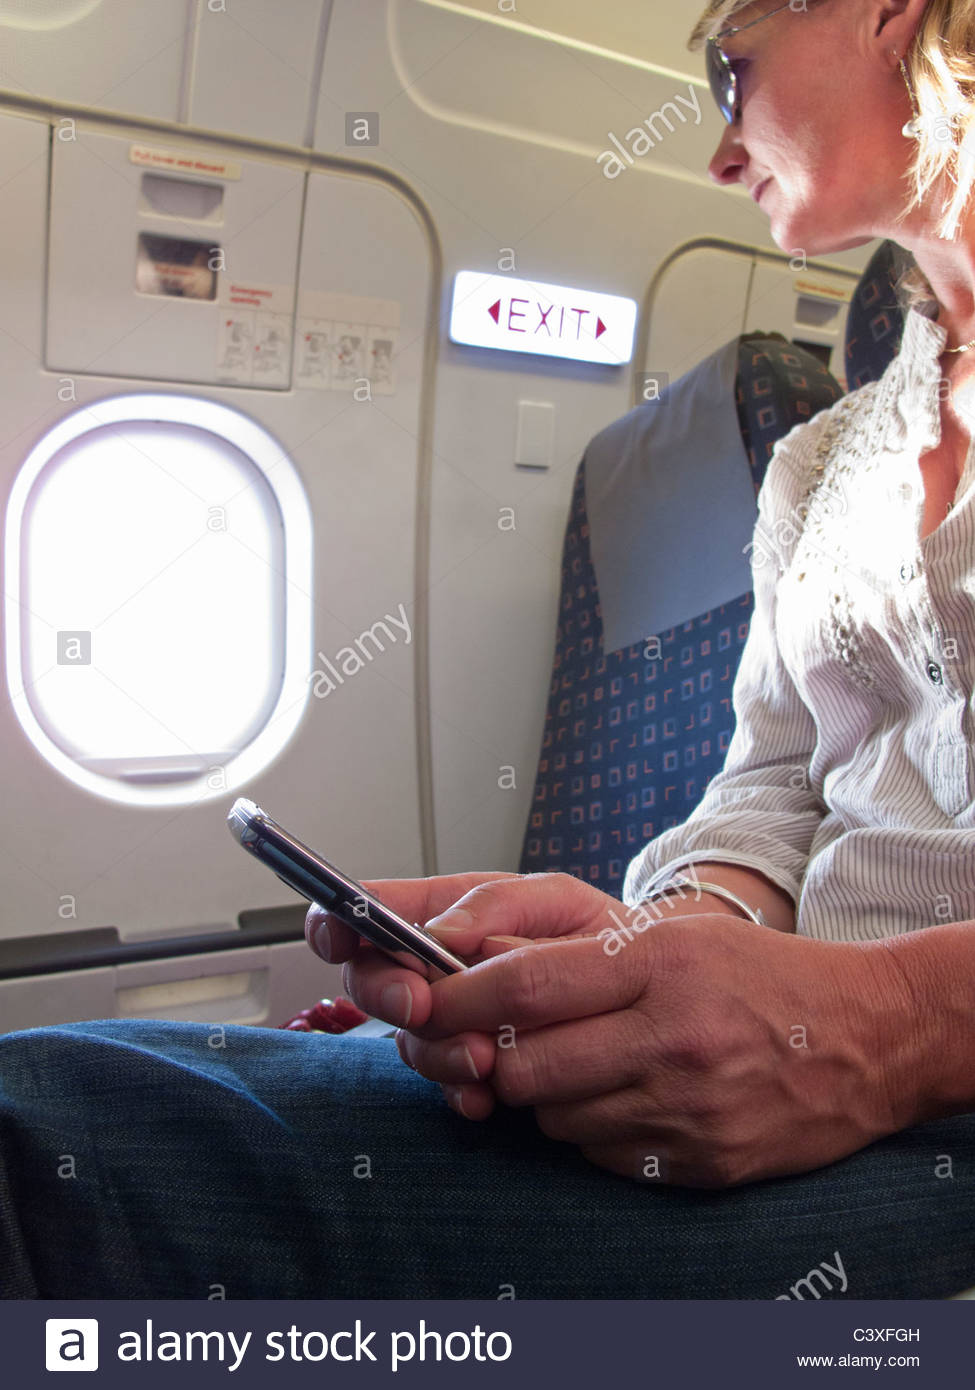 Close up of woman text messaging on cell phone in airplane - Stock Image